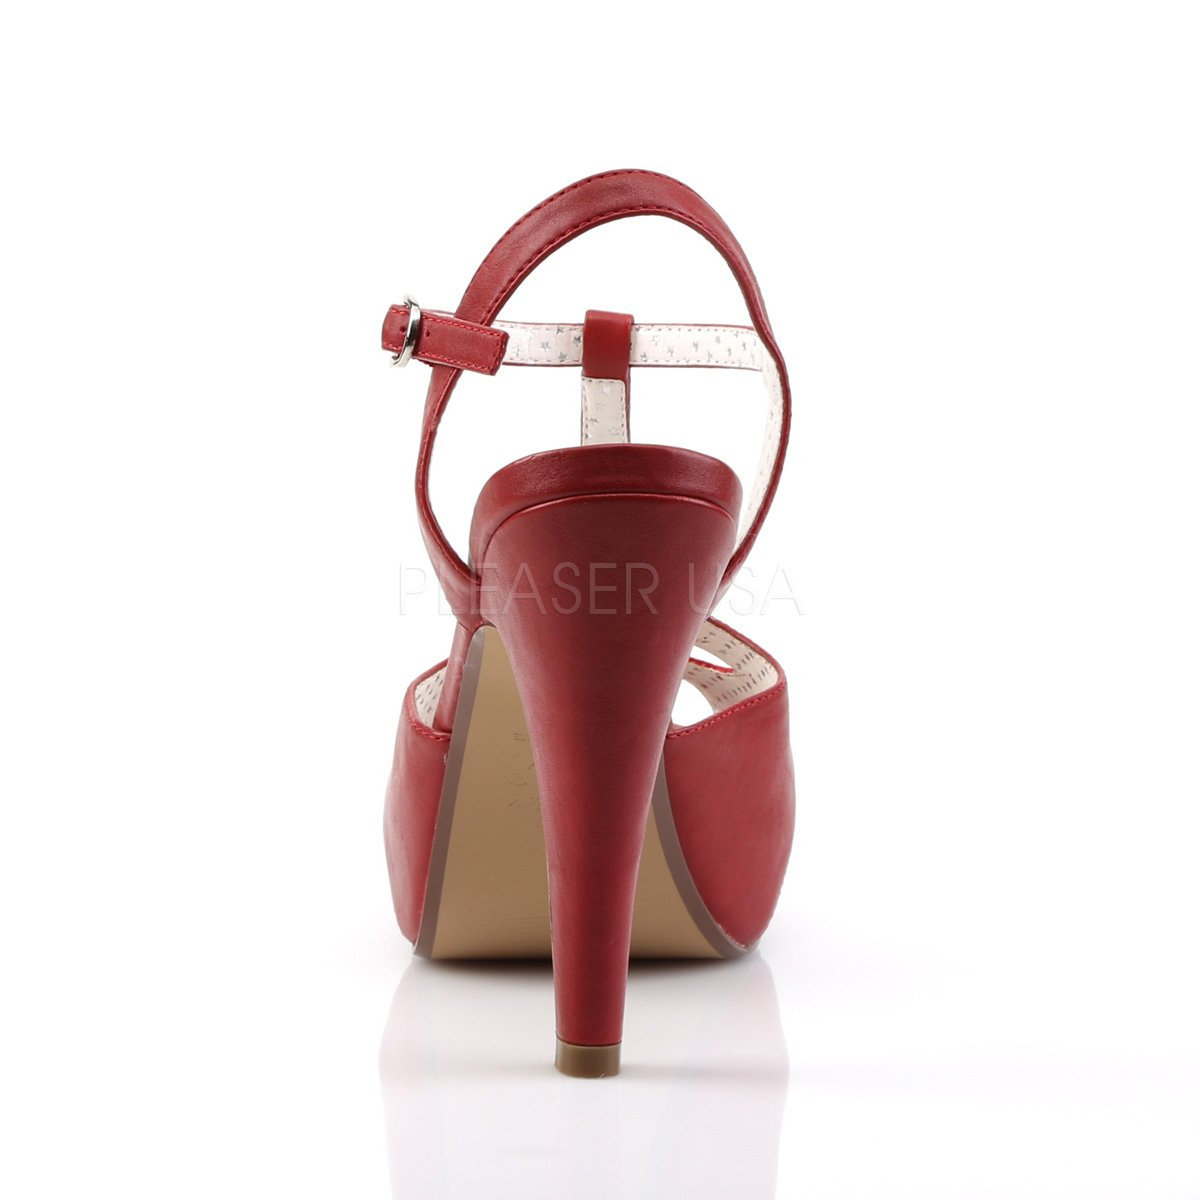 Higher-Heels Pinup Couture Couture Couture Riemchen Sandaletten Open Toe mit Plateau Bettie-23 rot 937a2b